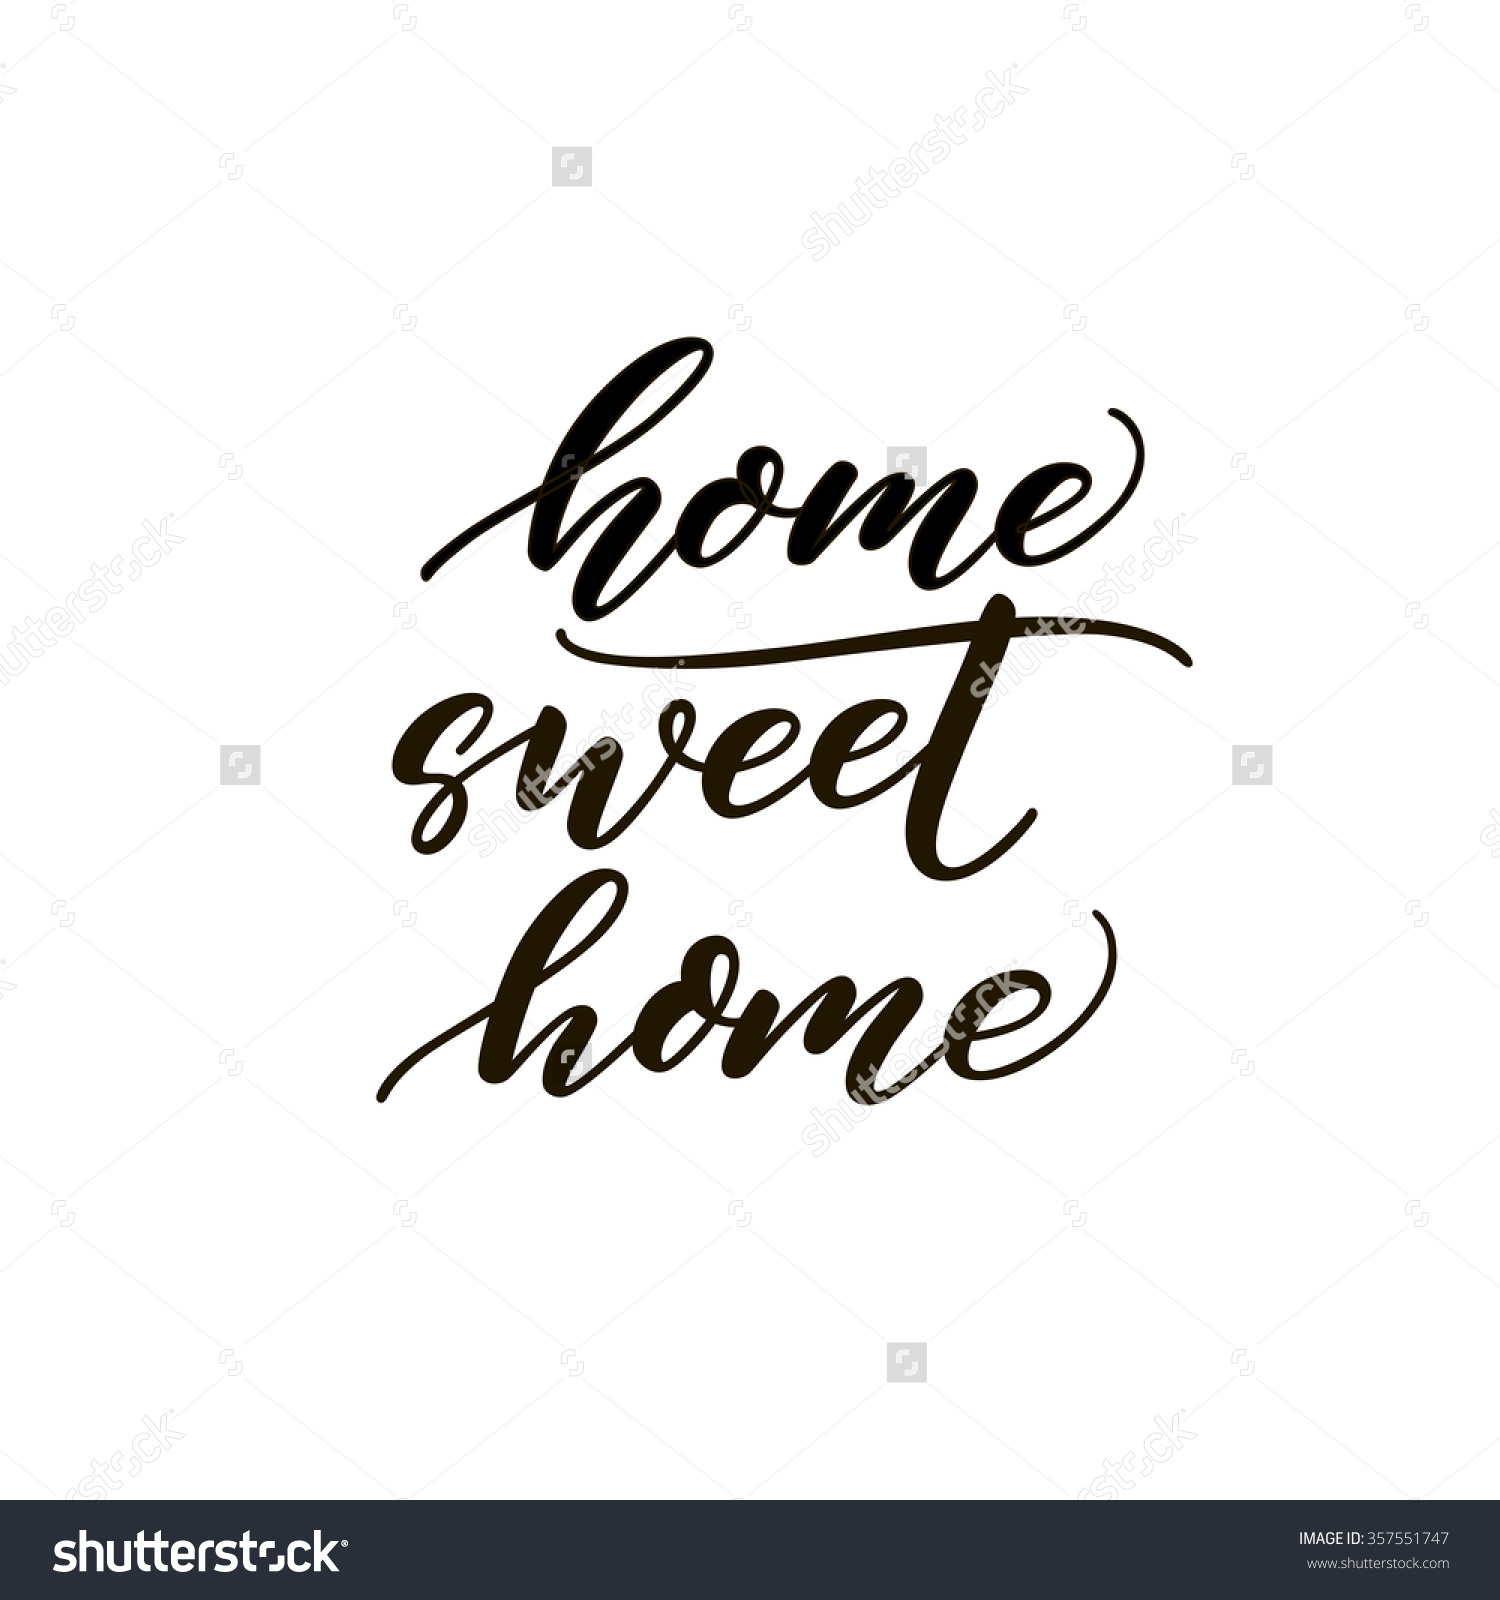 Home sweet home clipart black and white image download Home Sweet Home Card Hand Drawn Stock Vector 357551747 - Shutterstock image download